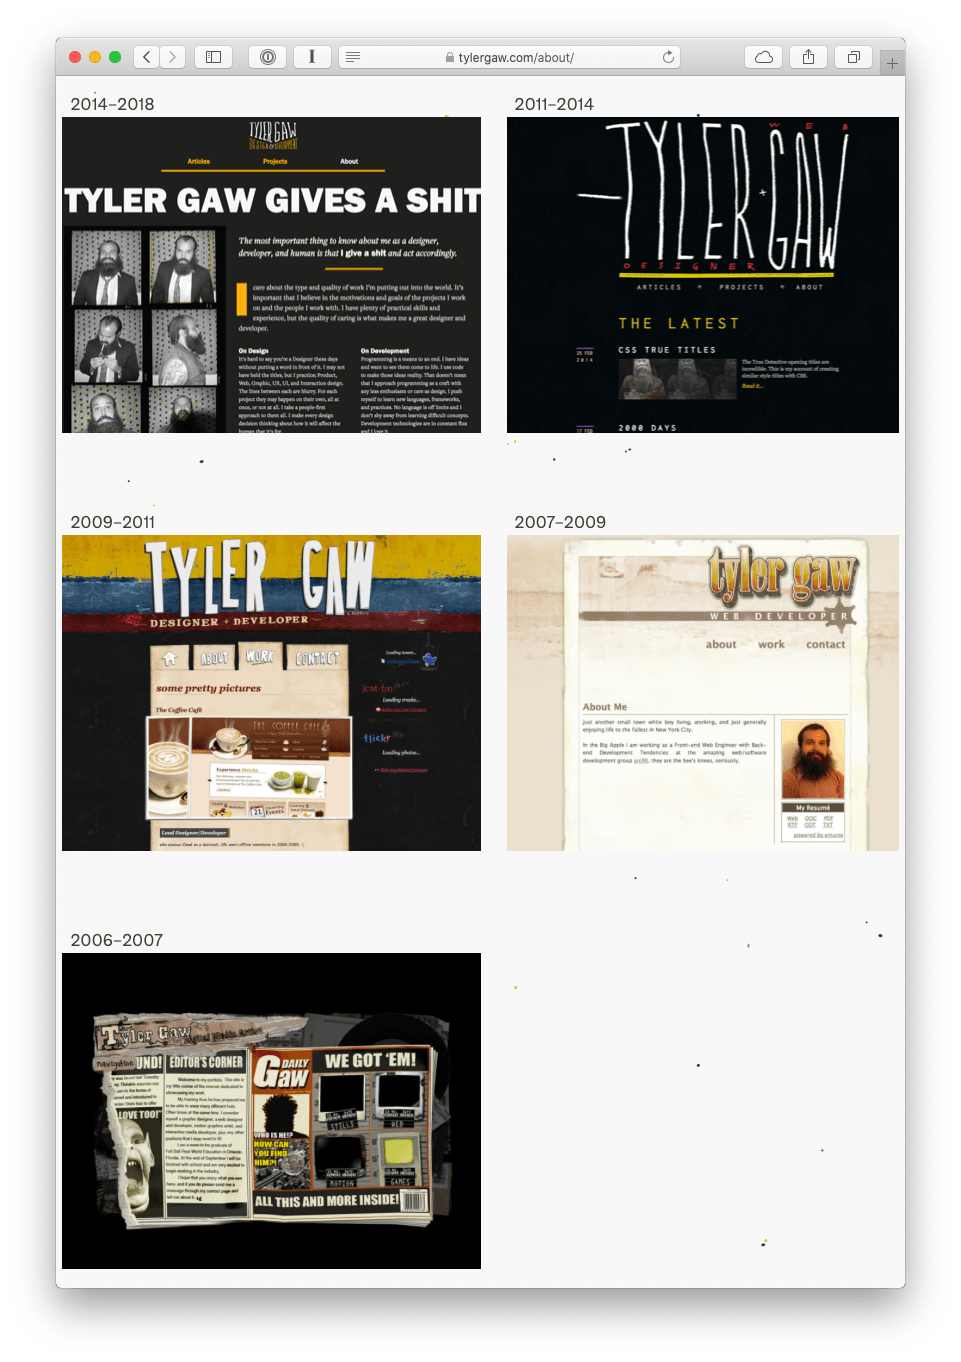 Screenshot of website version history on tylergaw.com